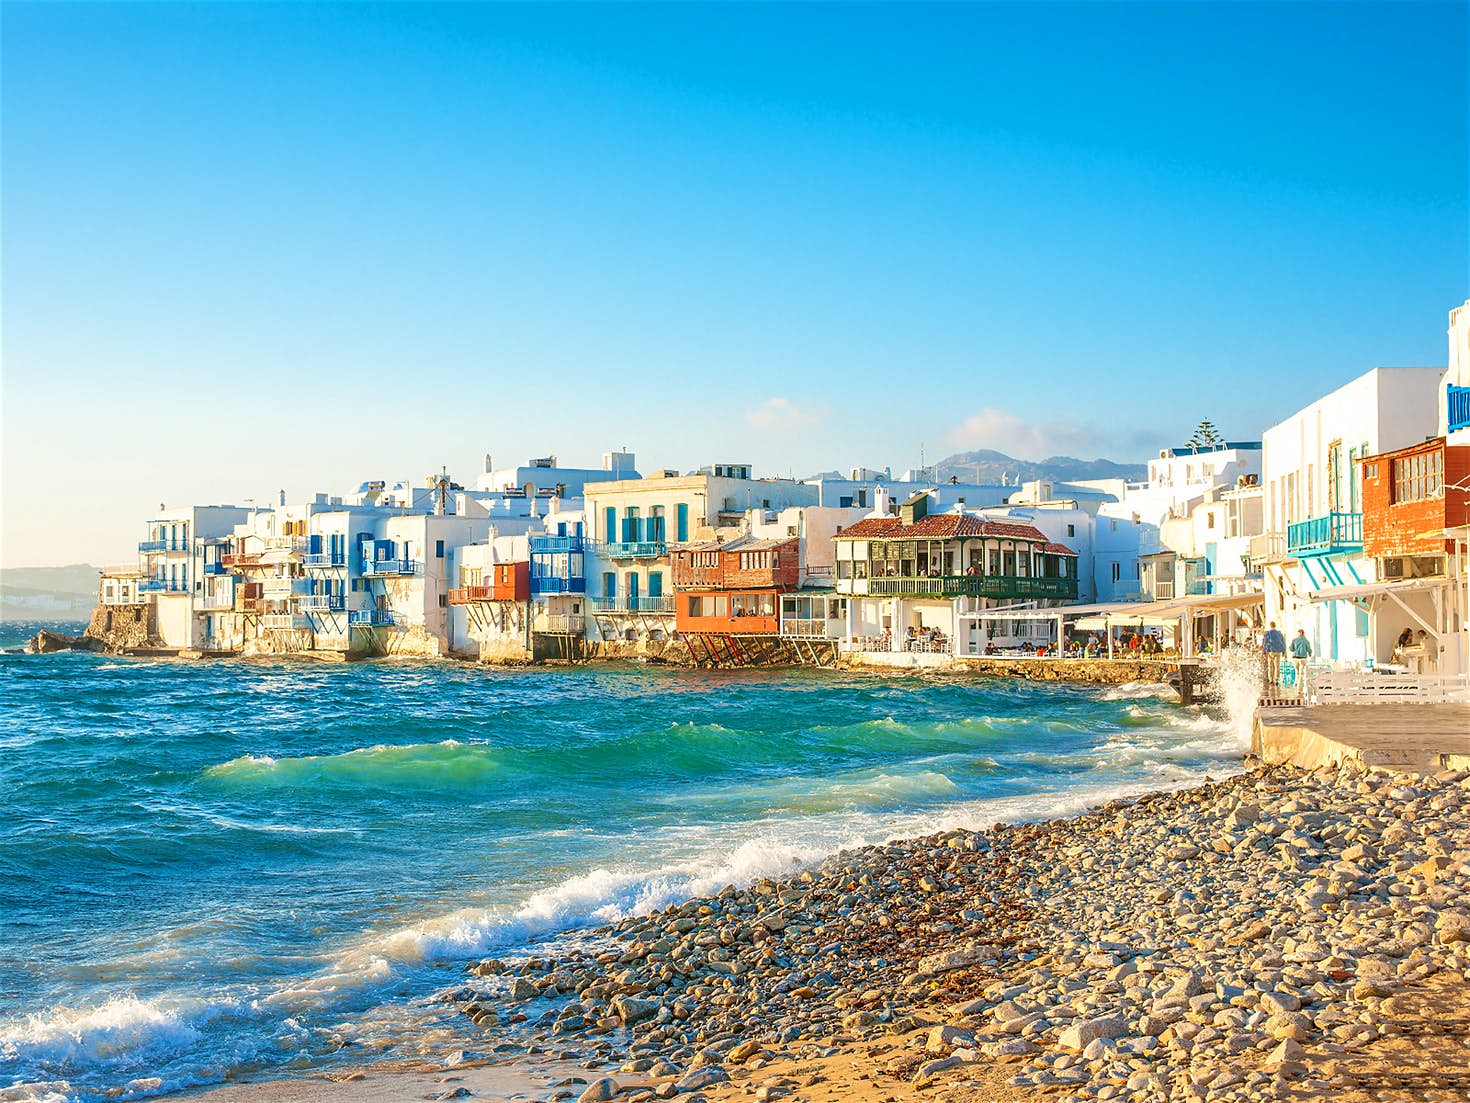 Mykonos Mini Cabin Tour - Blue Cruise,Light Tours Blue Cruise, Blue Cruise, Discount Tours,The Blue Voyage Of Mykonos 313